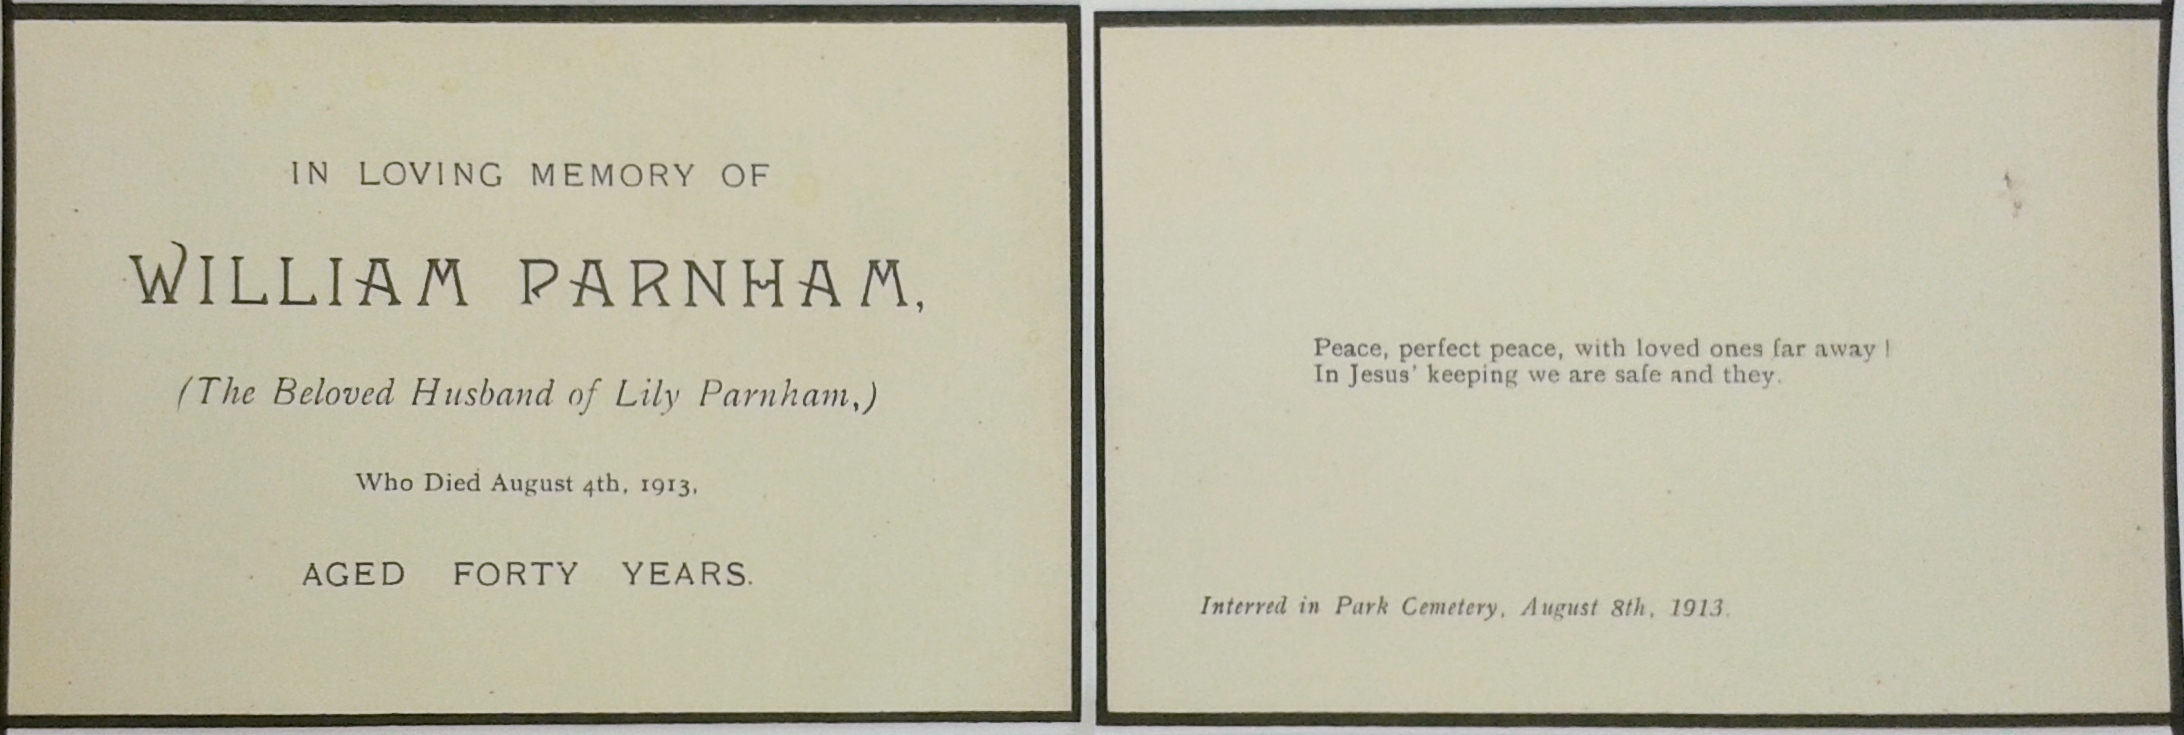 William Parnham card 10